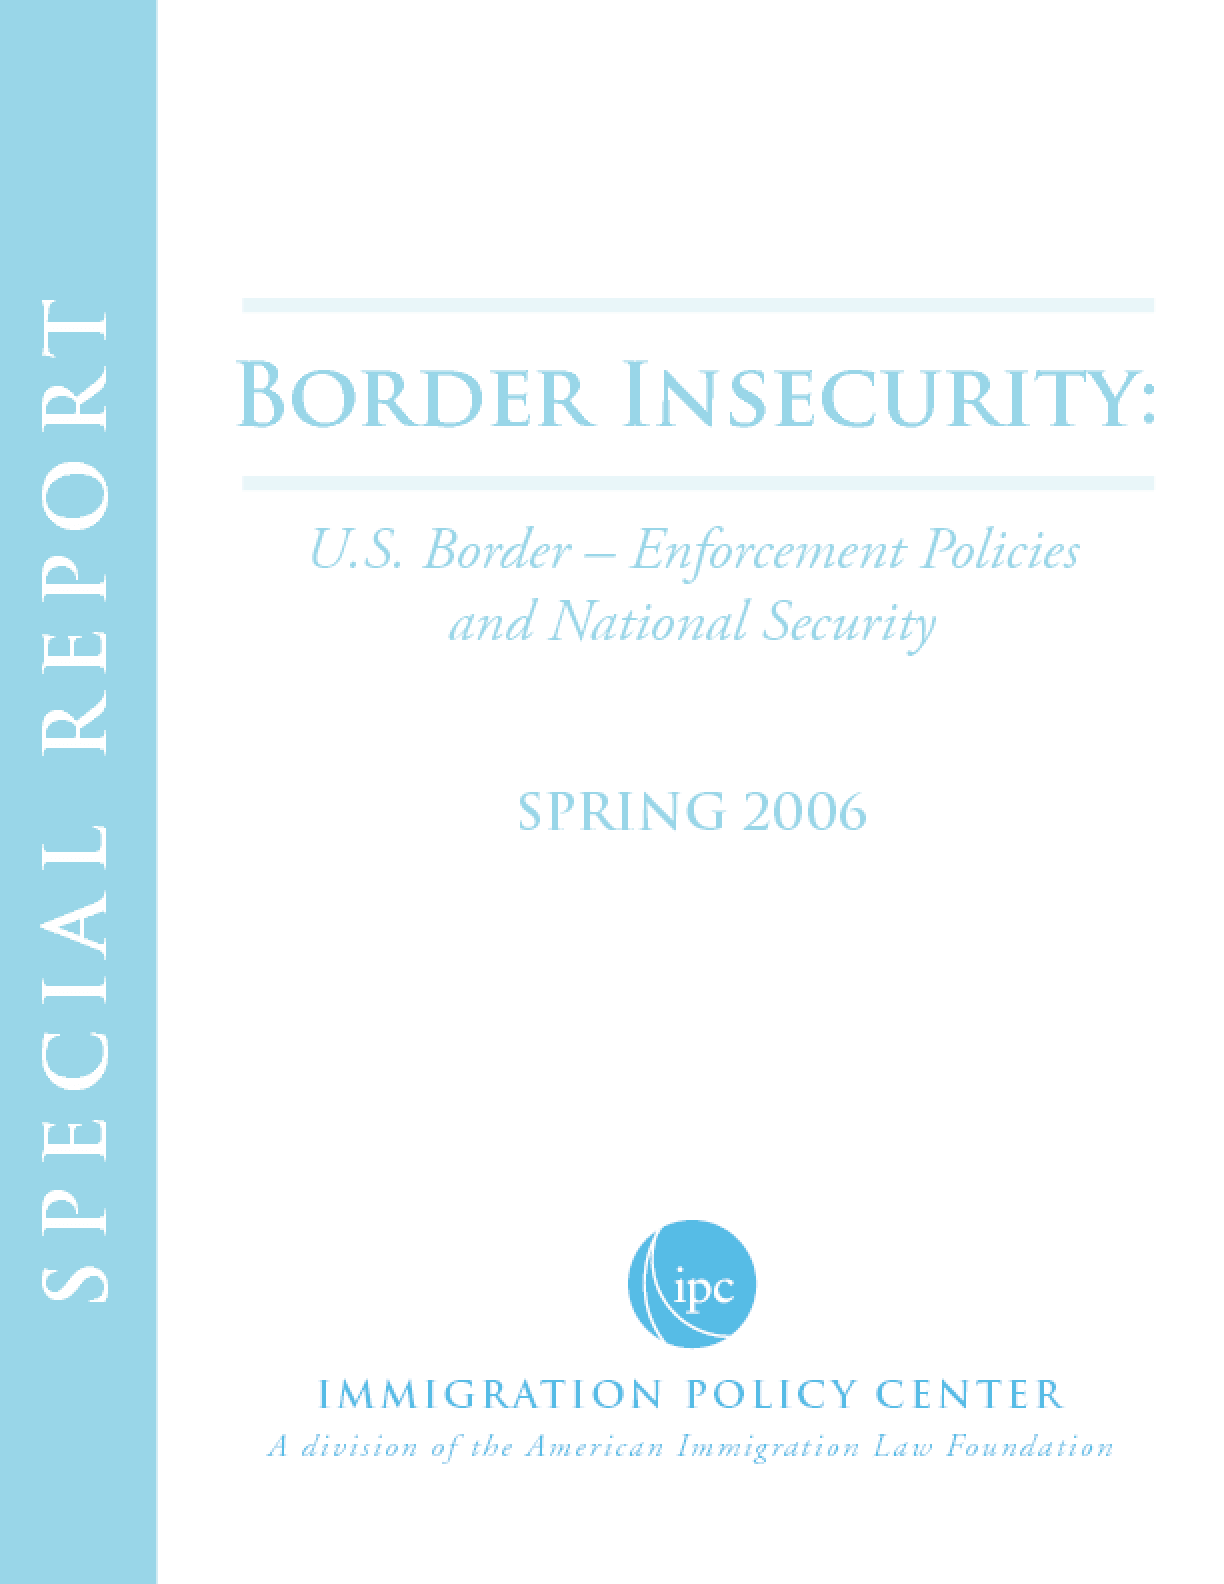 Border Insecurity: U.S. Border-Enforcement Policies and National Security